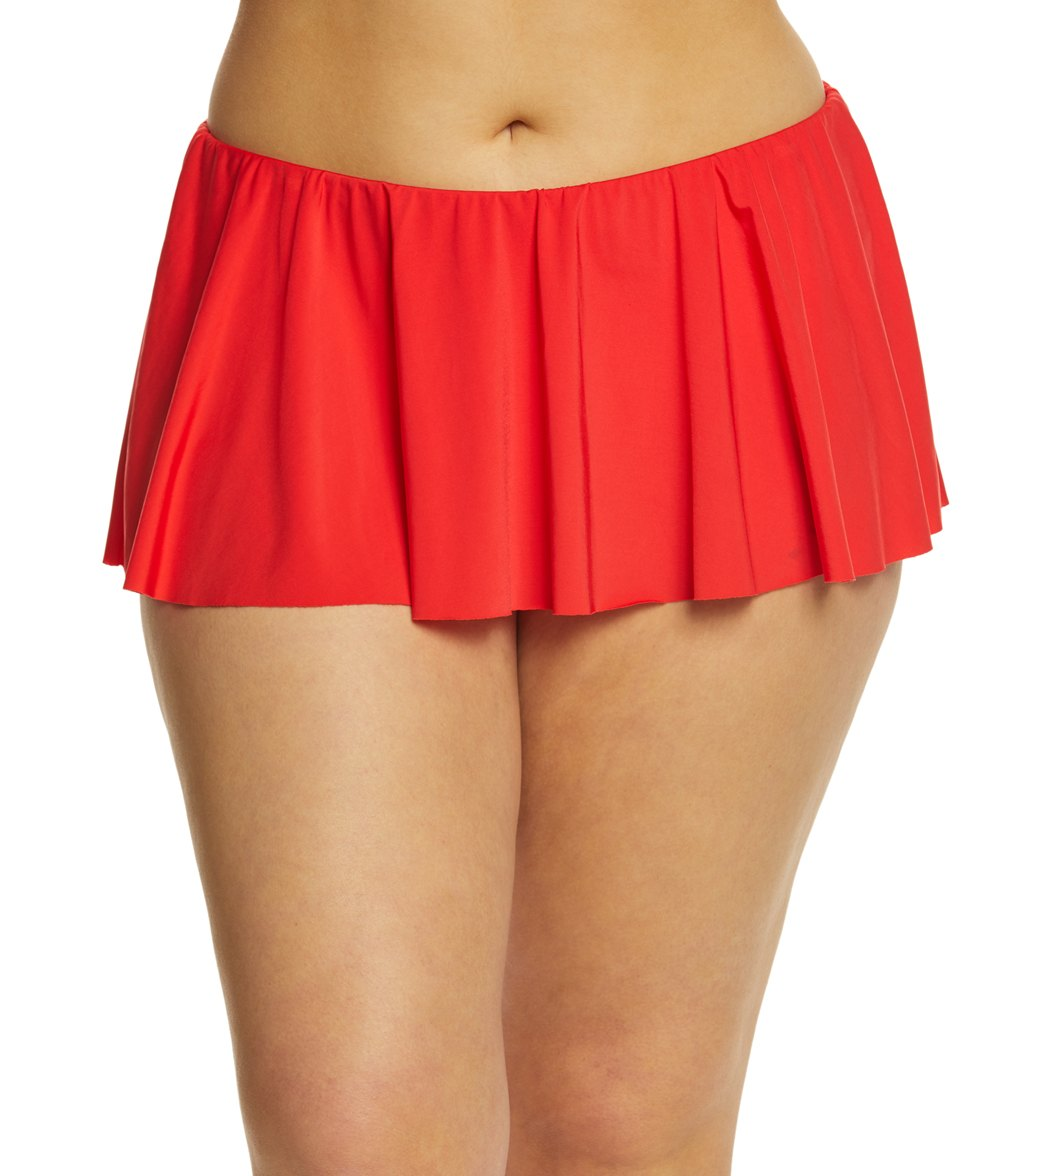 Kenneth Cole Reaction Plus Size Solid Flounce Swim Skirt at SwimOutlet.com  - Free Shipping b03e30897046